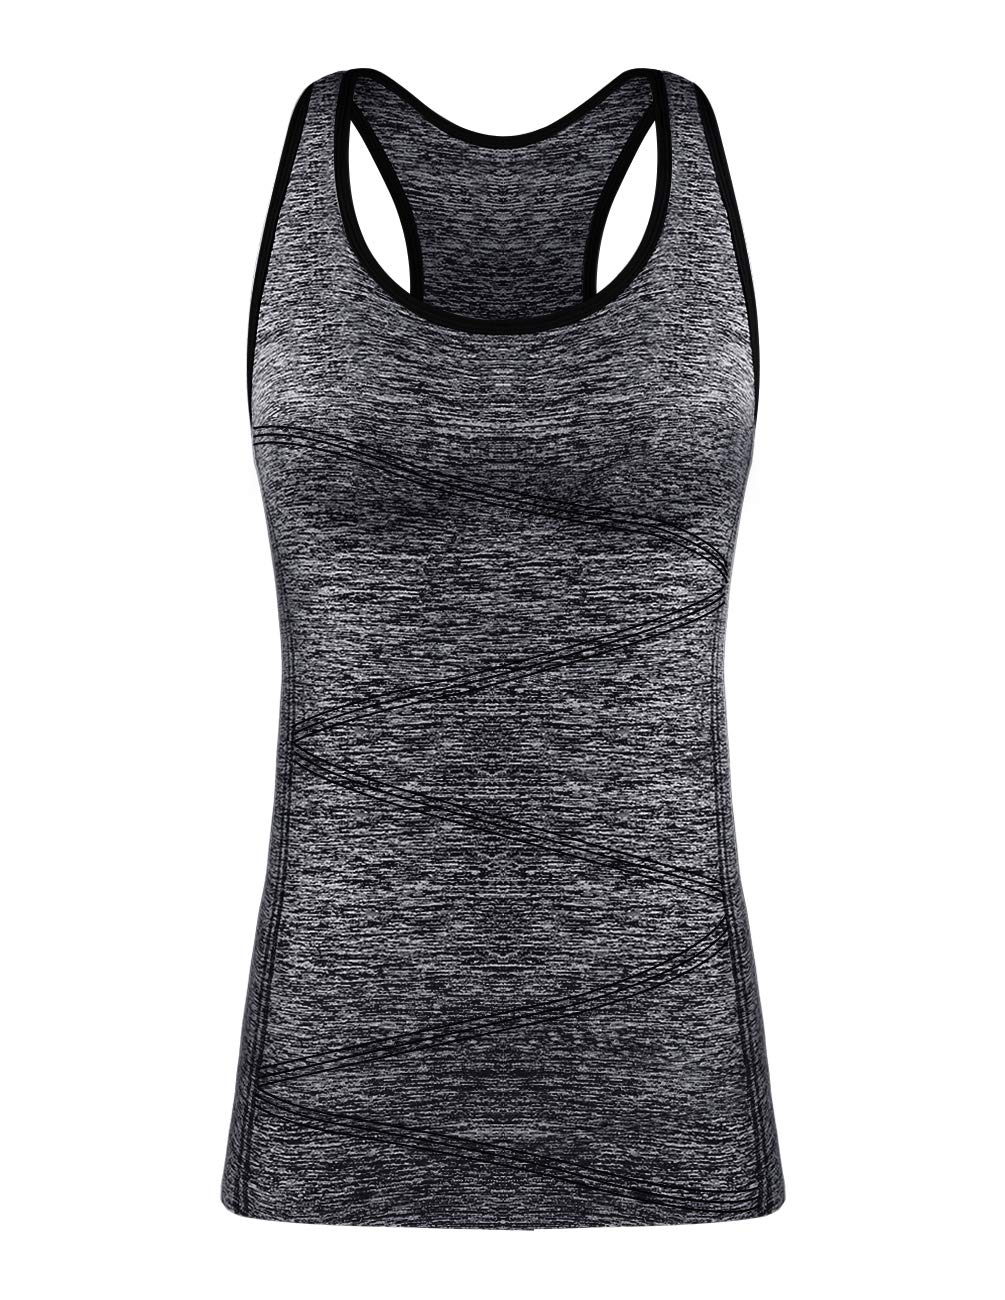 DISBEST Yoga Tank Top, Women's Performance Stretchy Quick Dry Sports Workout Running Top Vest with Removable Pads (Black, X-Large) by DISBEST